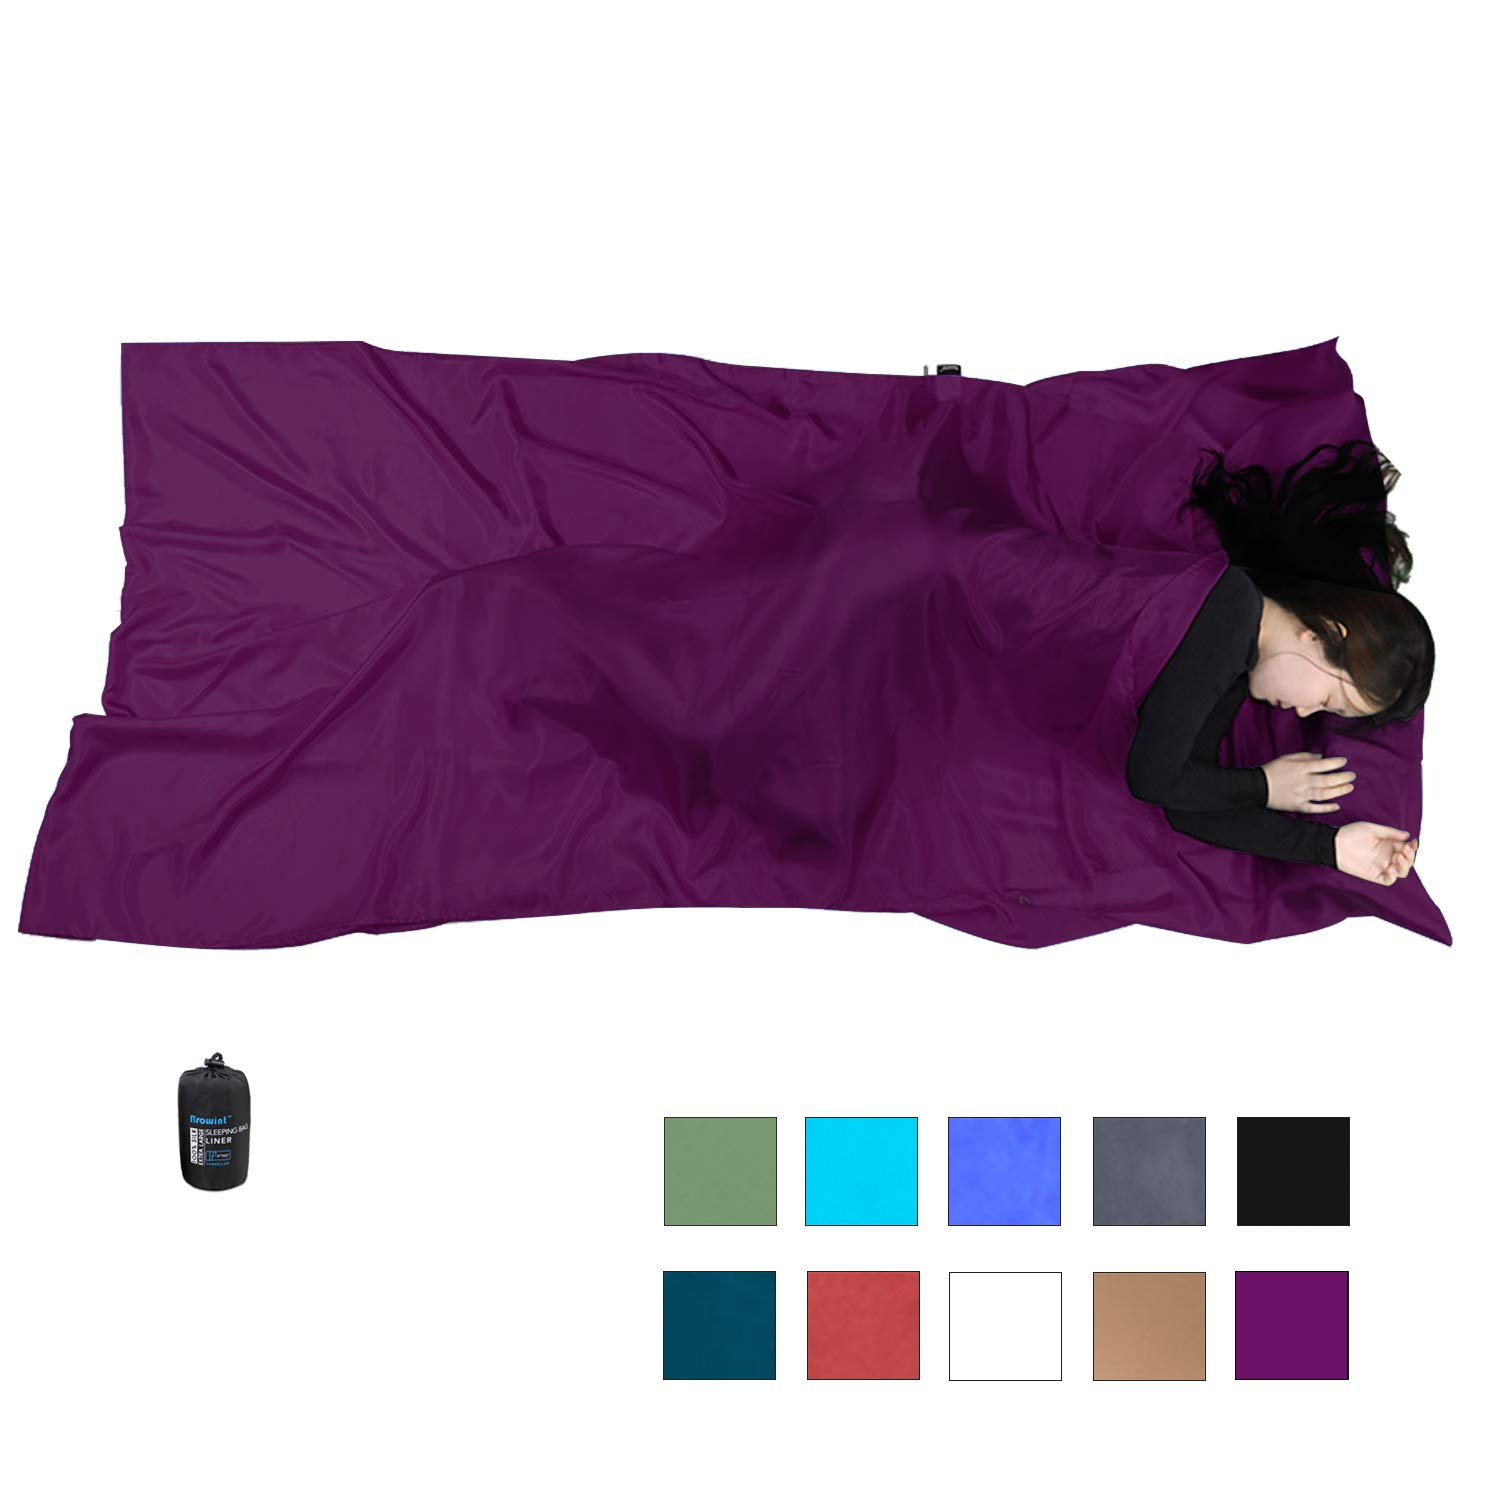 Browint Silk Sleeping Bag Liner, 100% Mulberry Silk Sleep Sheet, Sack, Extra Wide 87''x43'' & 87''x34'', Lightweight Travel Sheet for Hotel, Envelop Rectangular 73''x34'', Hooded Mummy 87''x34'' by Browint